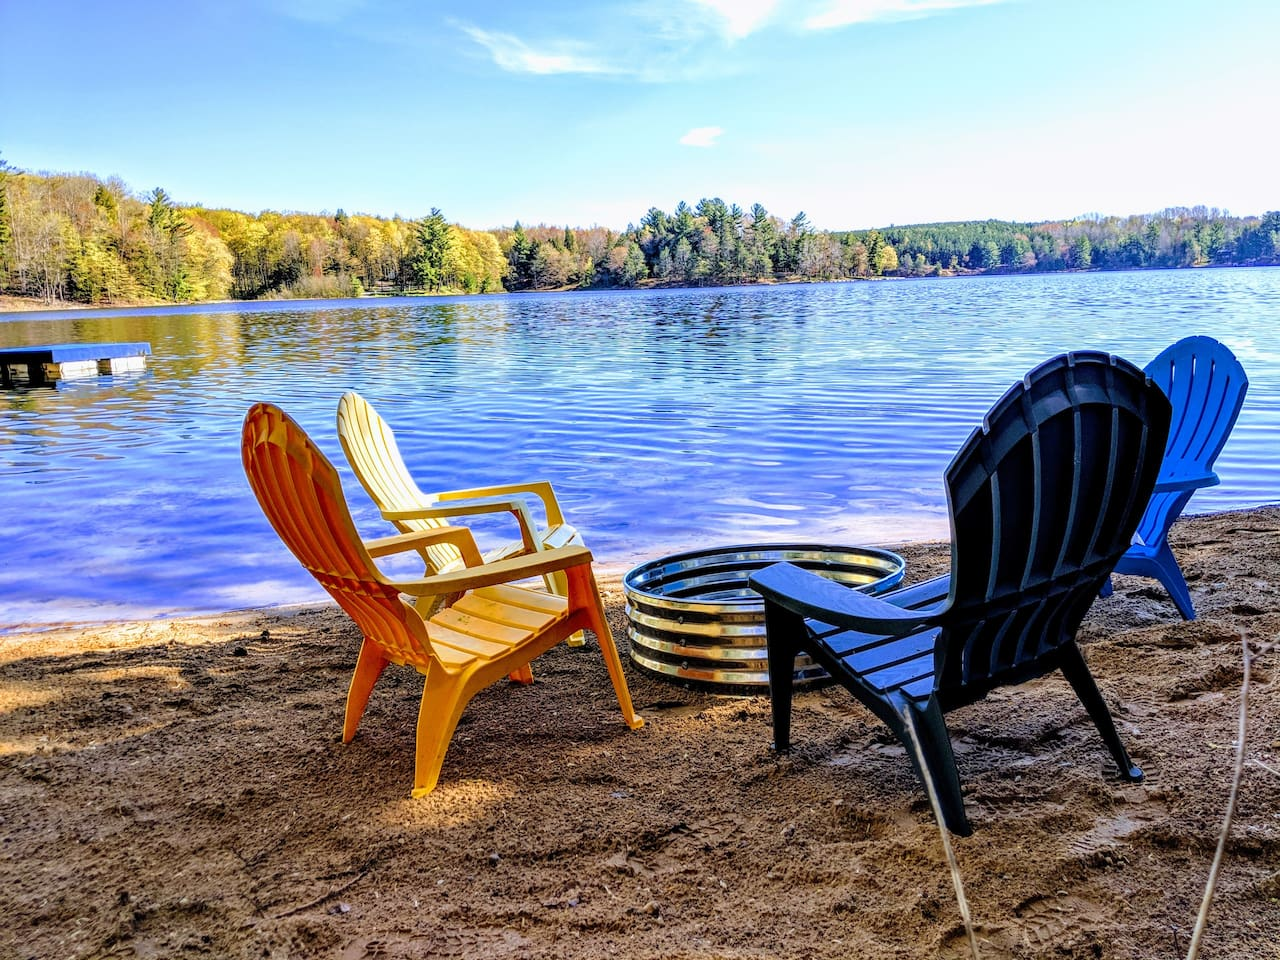 Swim, relax, boat, & have your campfire on the sandy, private beach at beautiful Lake Meauwataka!